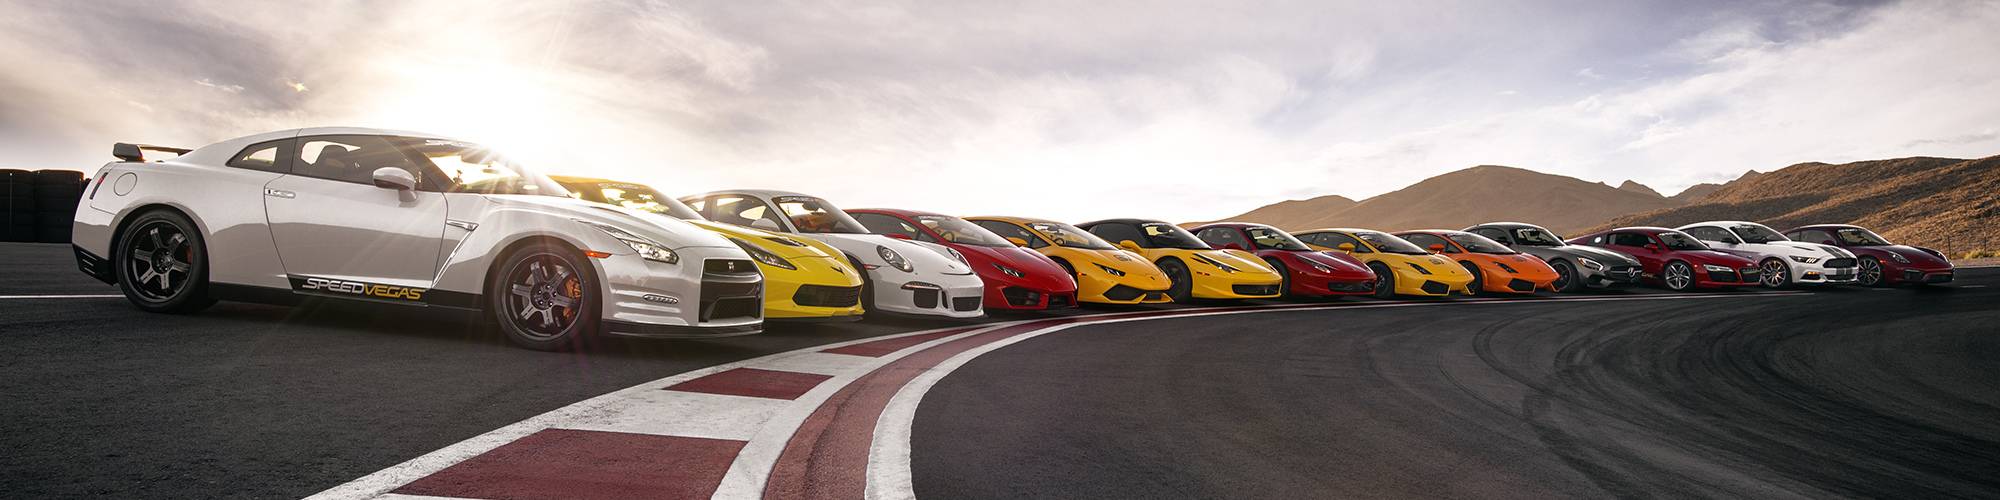 Howie D. from Backstreet Boys drove five exhilarating laps around SPEEDVEGAS' 1.5-mile Formula One-inspired track in a Ferrari 458 Italia. He reached a top speed of 131 MPH.